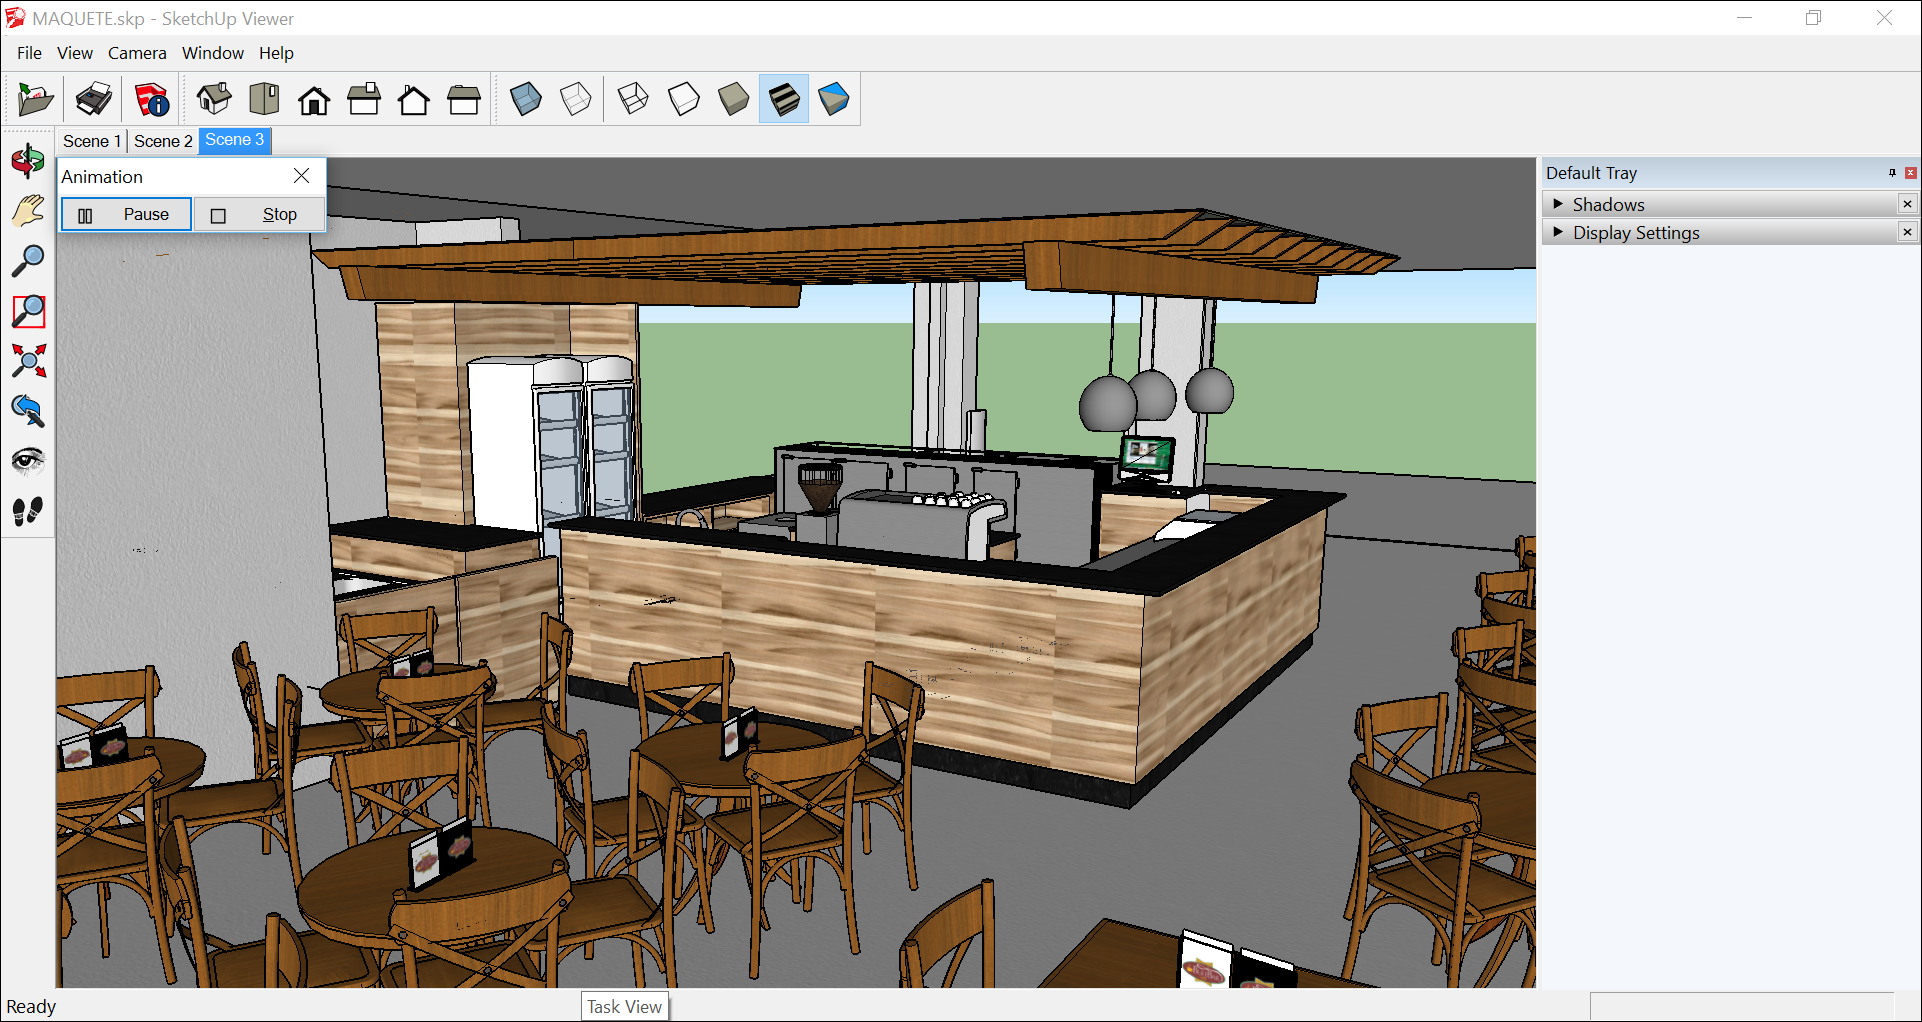 SketchUp Desktop Viewer enables you to play an animation